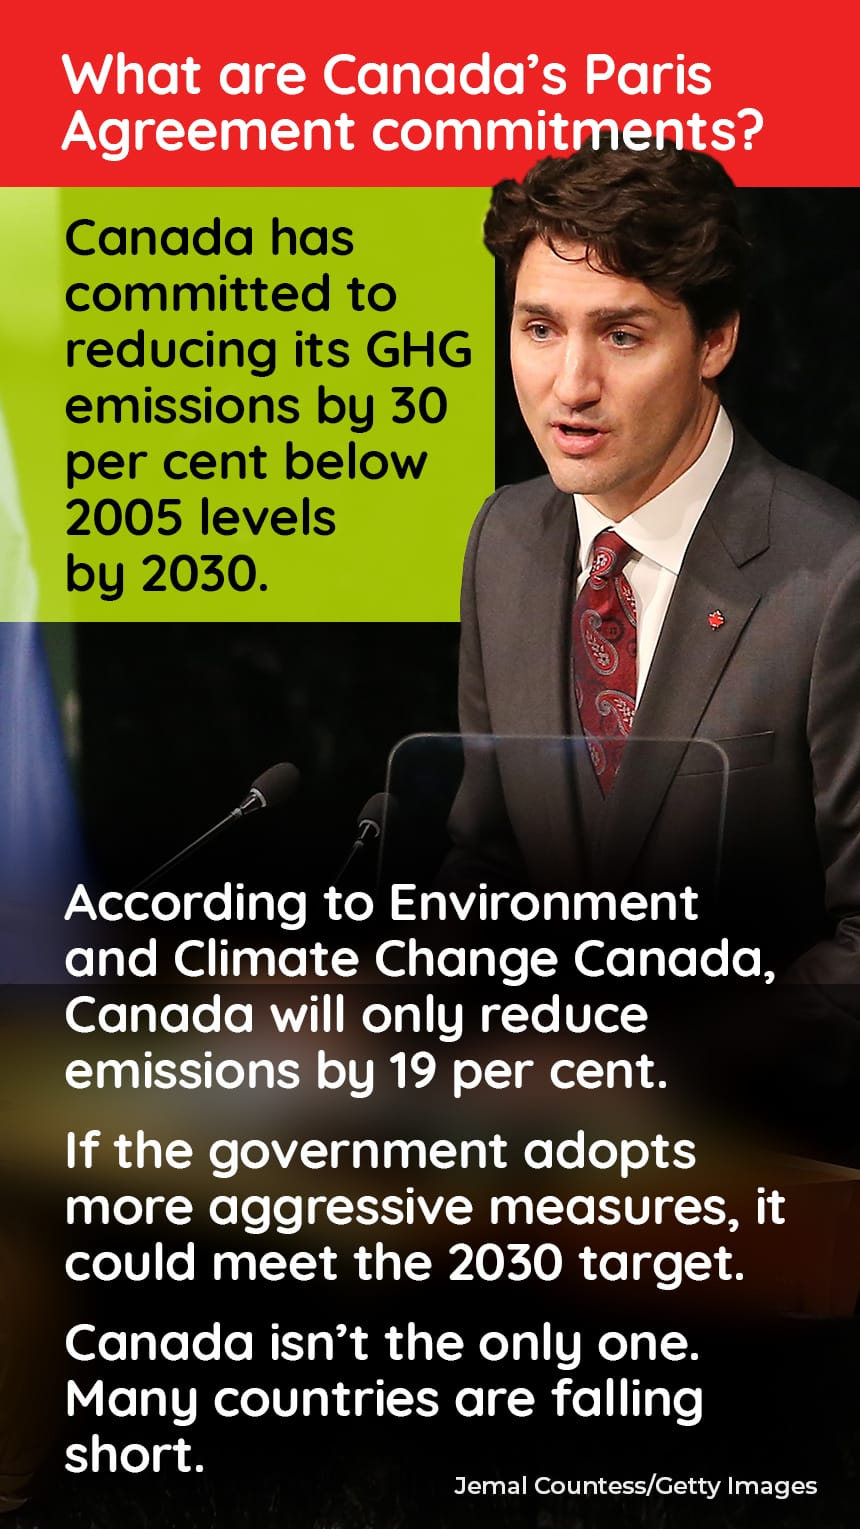 An image of Justin Trudeau speaking prior to signing the Paris Agreement For Climate Change with text that says, What are Canada's Paris Agreement commitments? Canada has committed to reducing its GHG emissions by 30 per cent below 2005 levels by 2030.  According to Environment and Climate Change Canada, Canada will only reduce emissions by 19 per cent. If the government adopts more aggressive measures, it could meet the 2030 target.  Canada isn't the only one. Many countries are falling short.